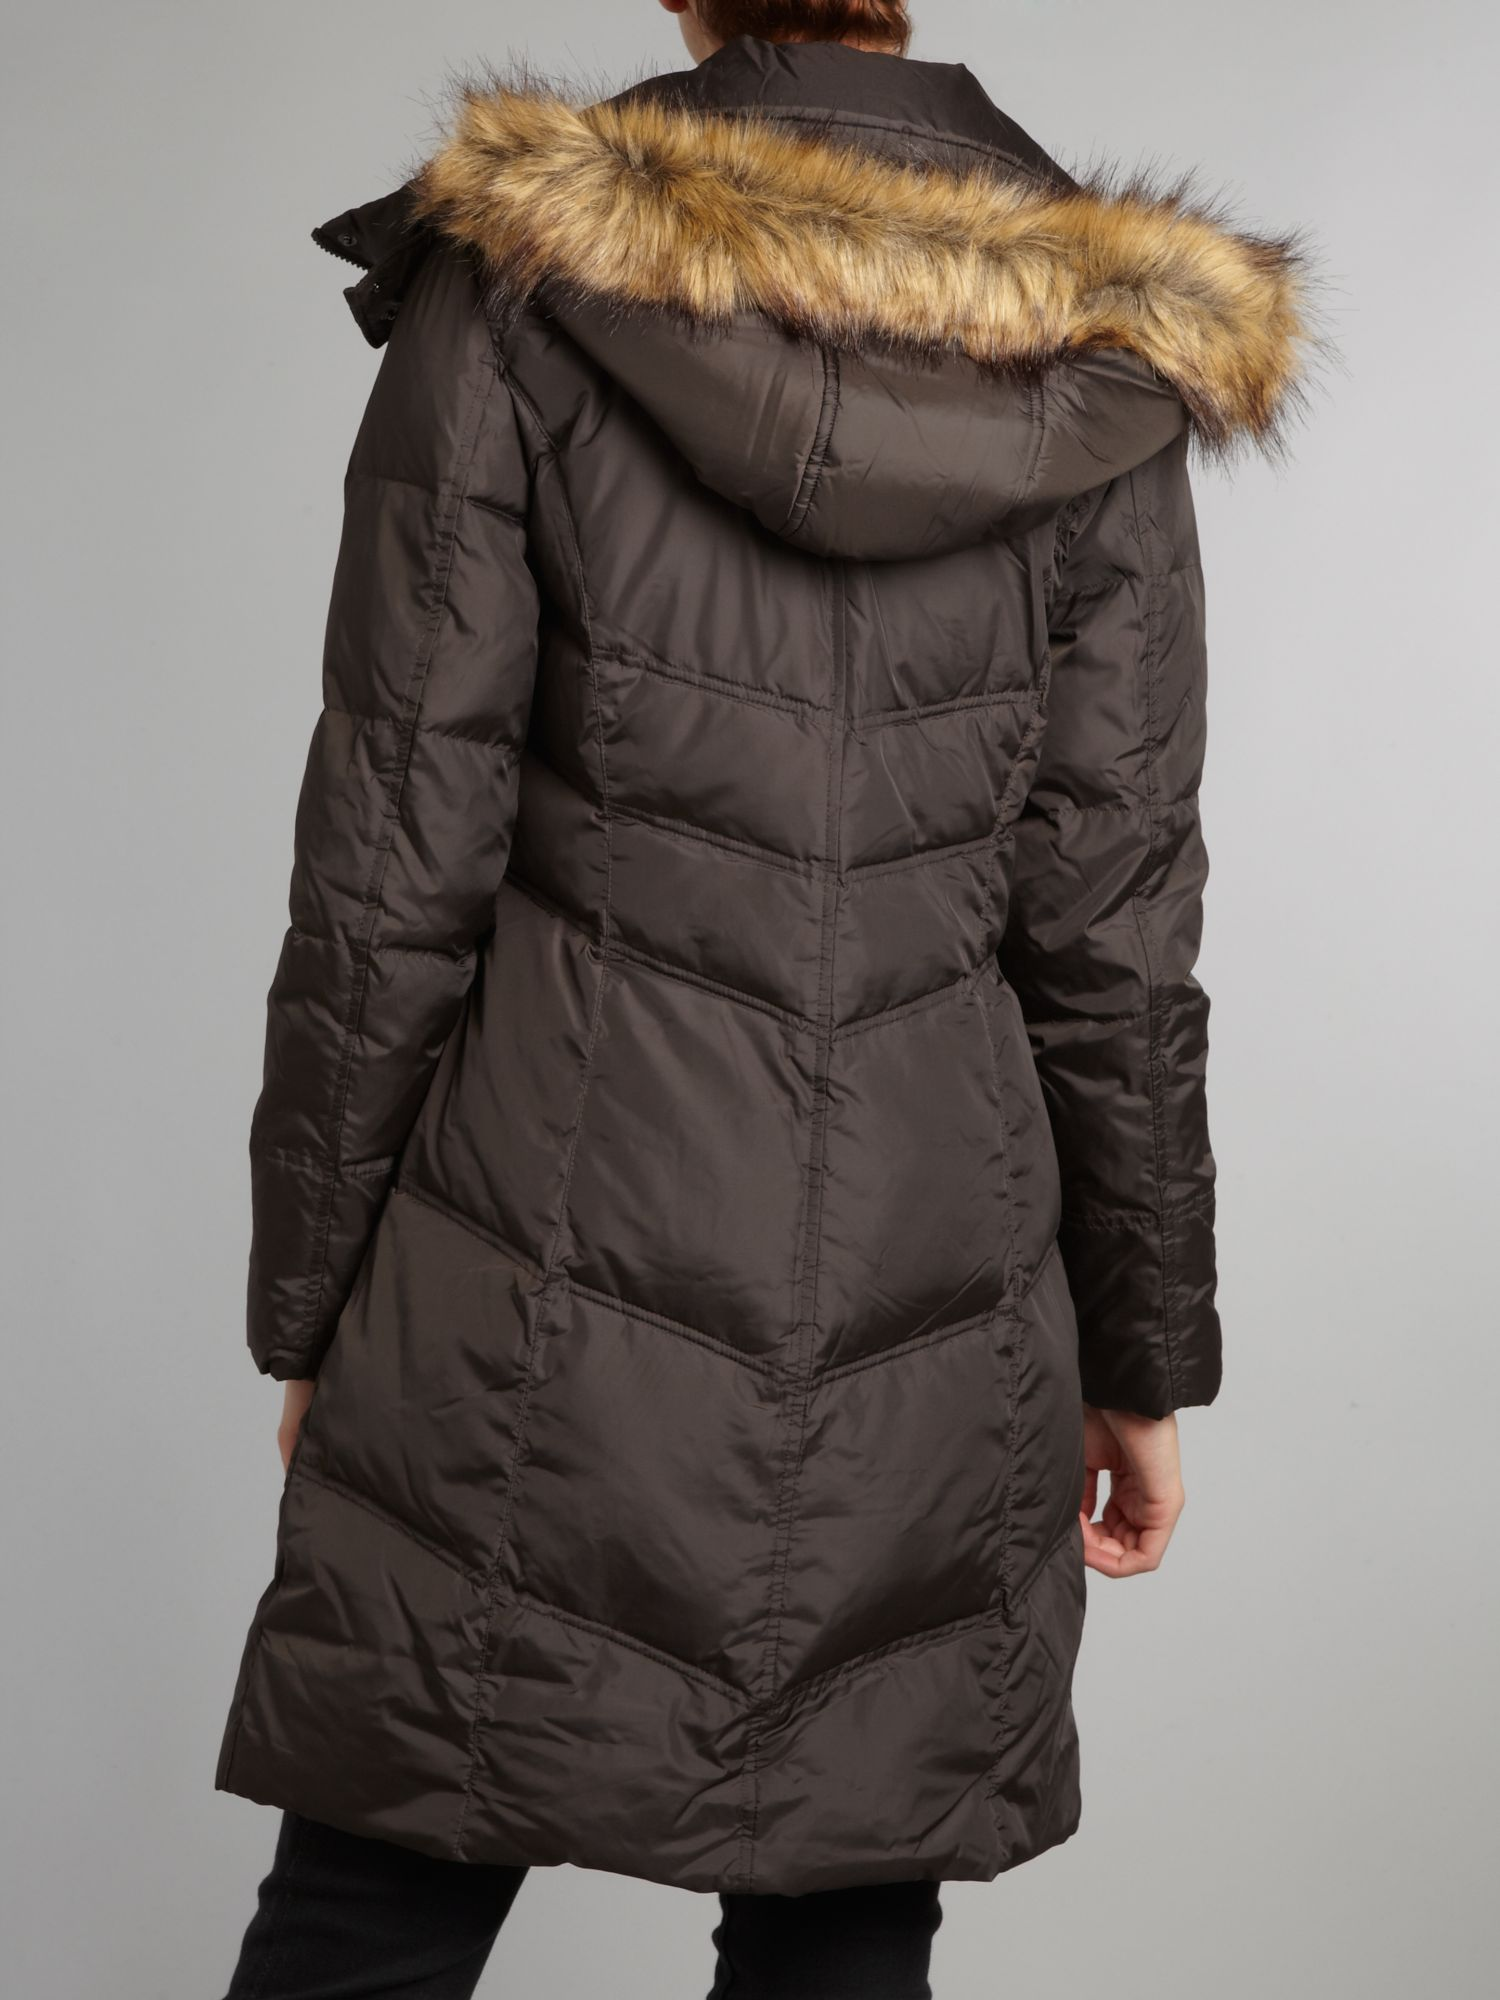 Andrew marc Padded Coat with Faux Fur Trim Hood in Brown | Lyst